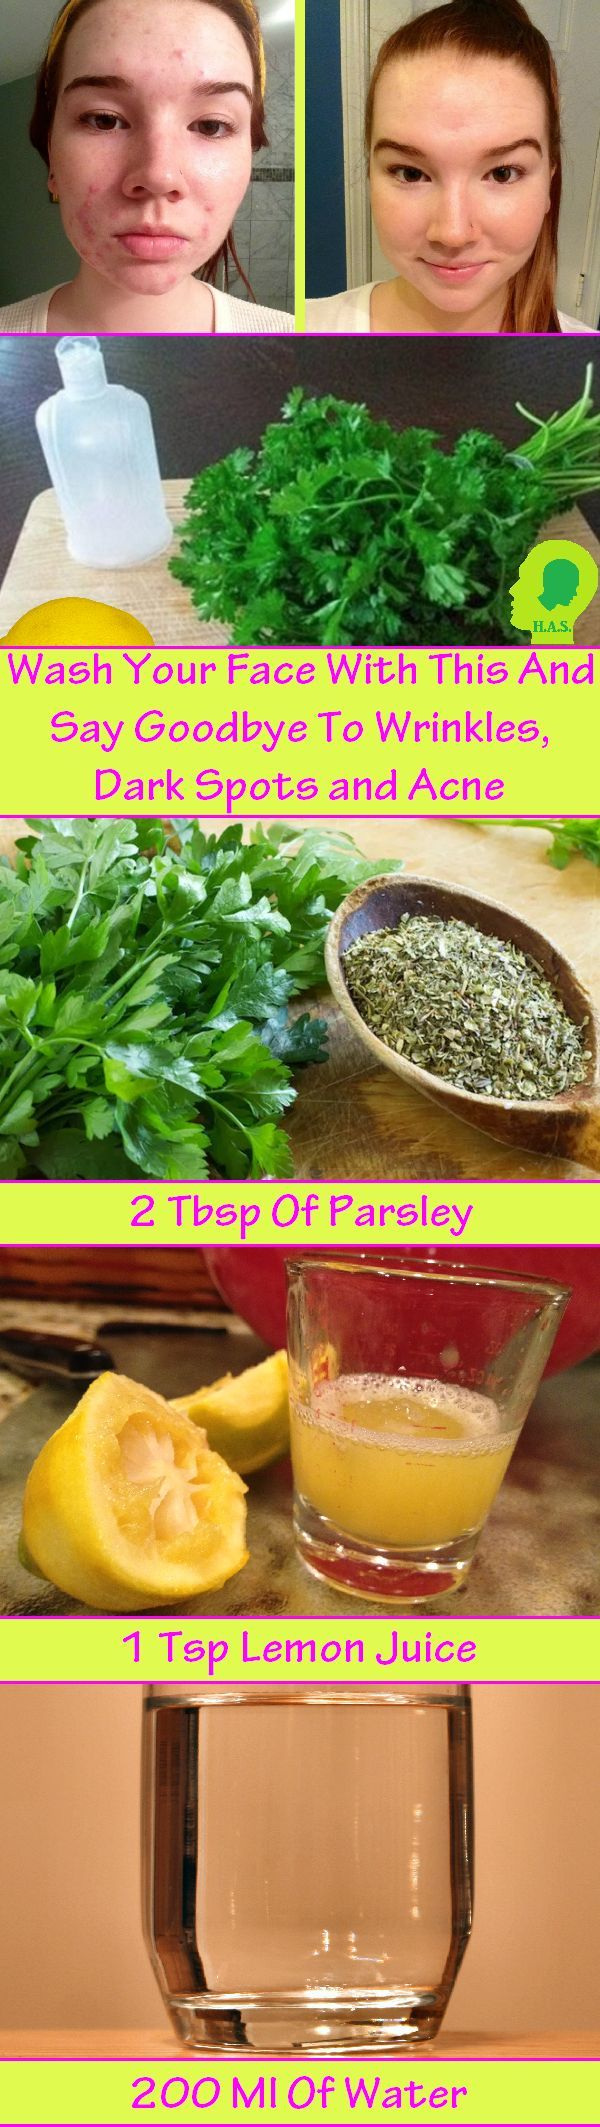 Goodbye Dark Spots, Freckles And Wrinkles: One Ingredient You Will Remove Them All In An Instant!